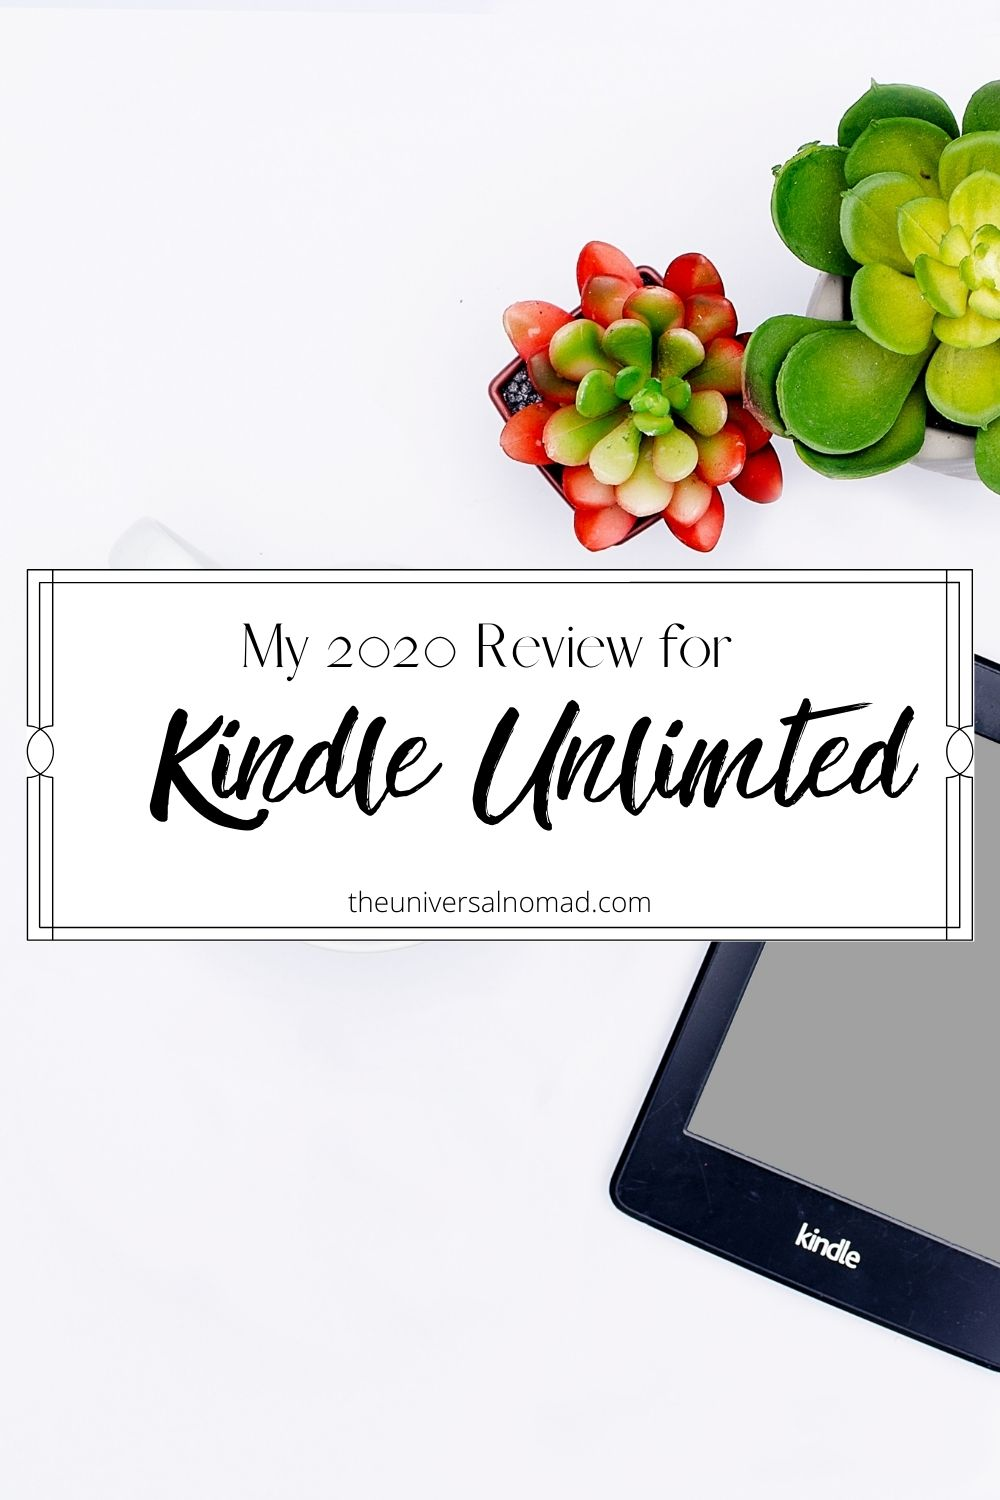 My Kindle Unlimited review